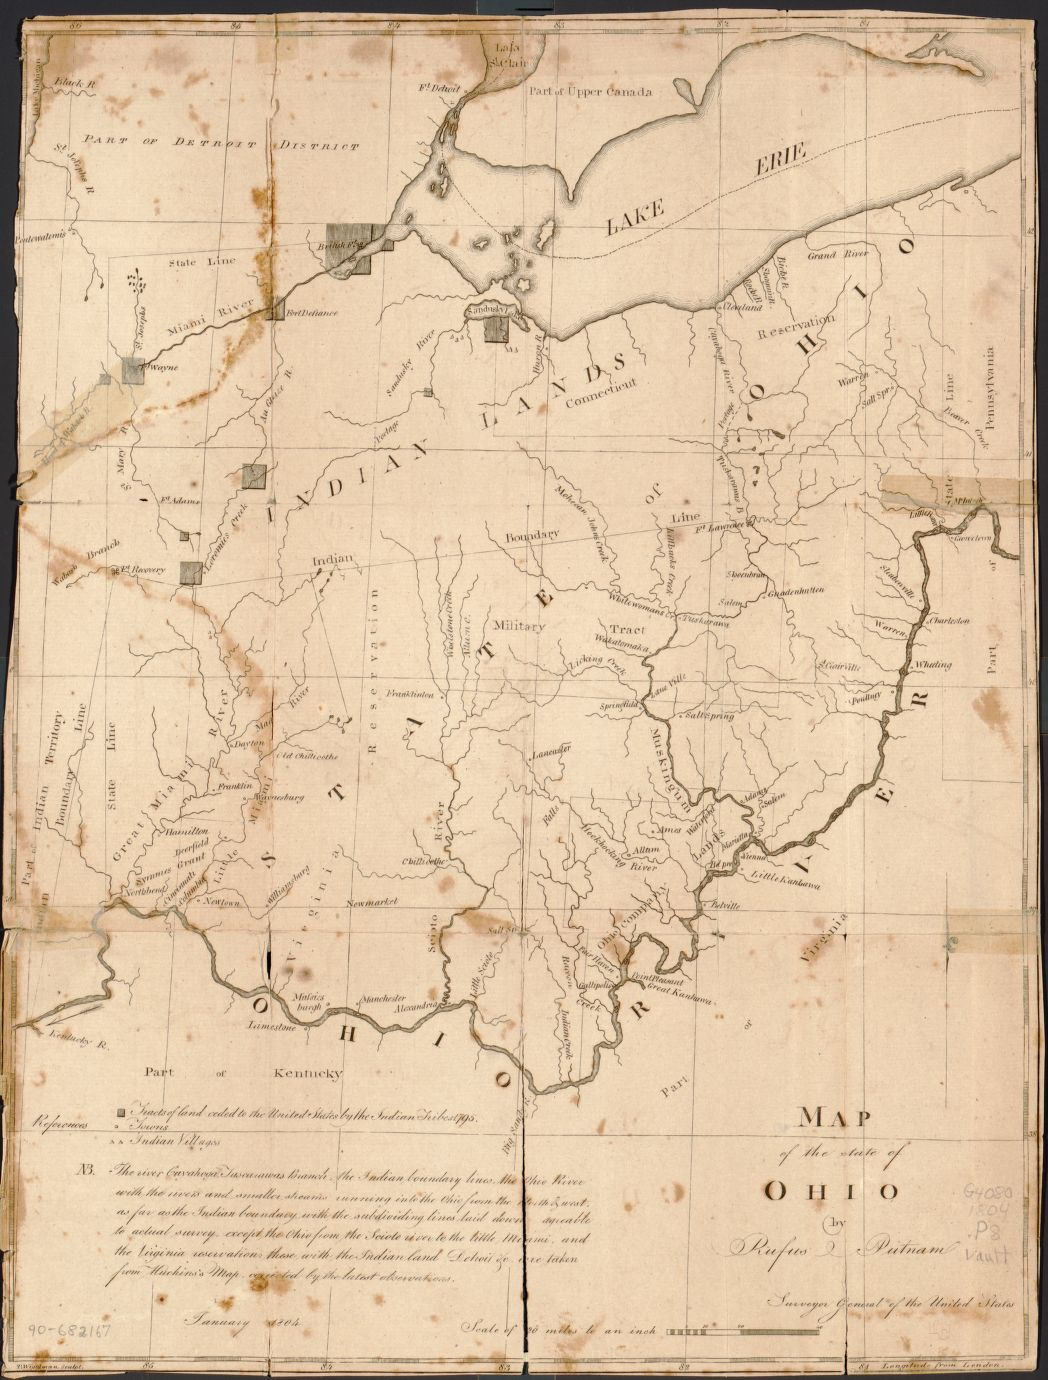 Map of the state of Ohio, by Rufus Putnam, Thomas Wightman, and Thaddeus Mason Harris, ca. 1804, [G4080 1804 .P8]. Courtesy Library of Congress.